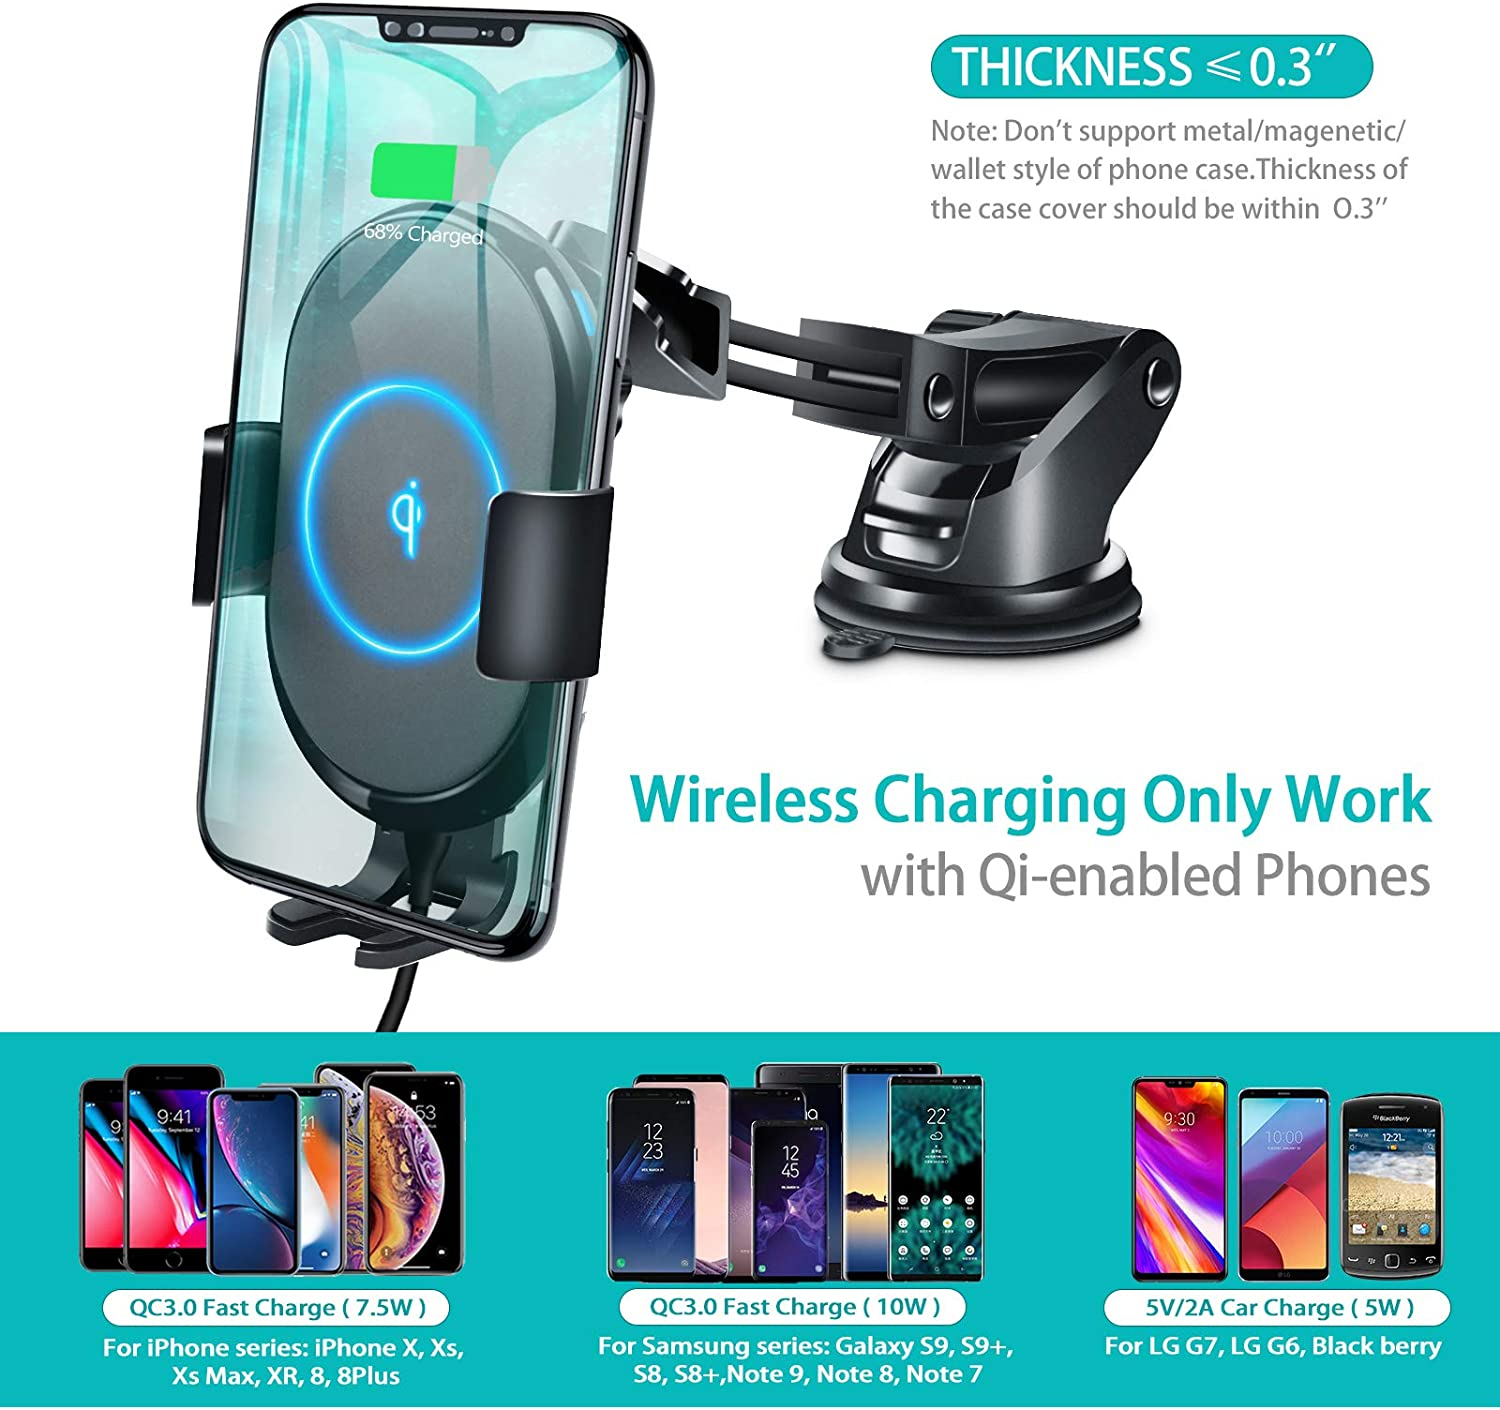 ABLGGRID Wireless Car Charger Mount Automatic Clamping 10W//7.5W Qi Fast Charging 5W Car Mount Holder Dashboard Compatible with iPhone Xs//Xs Max//XR//X//8//8 Plus,Galaxy S10//S10+//S9//S9+//S8//S8+//Note 9//Note